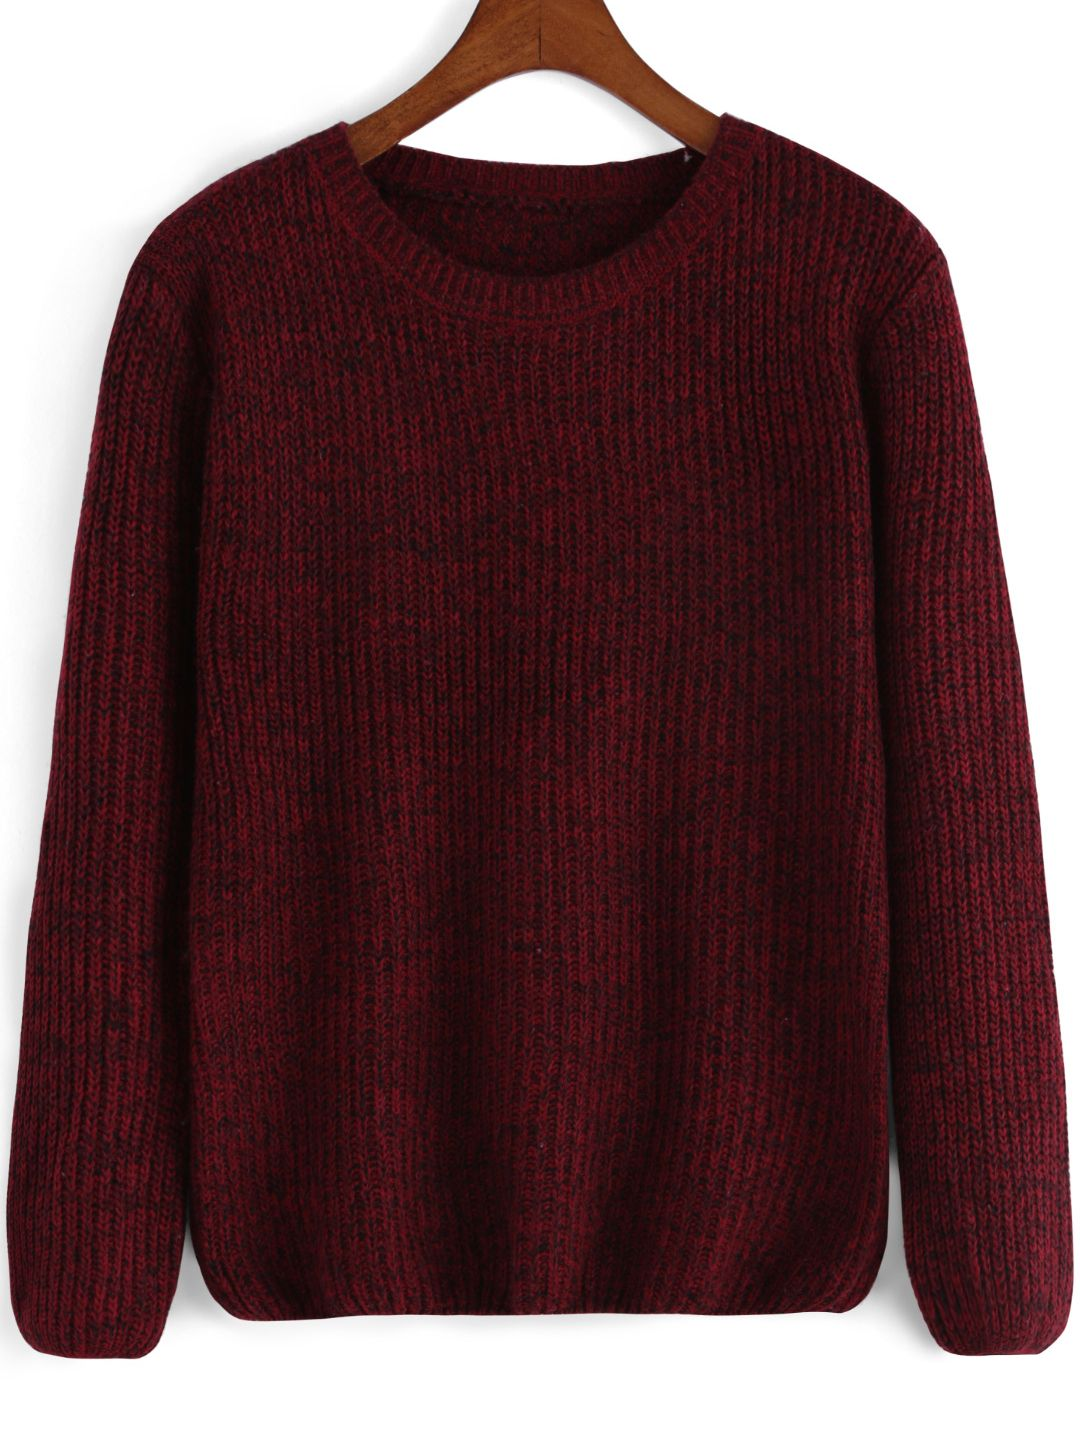 5cd4f8ddbac395 Pick short pullover sweater for the ends of winter